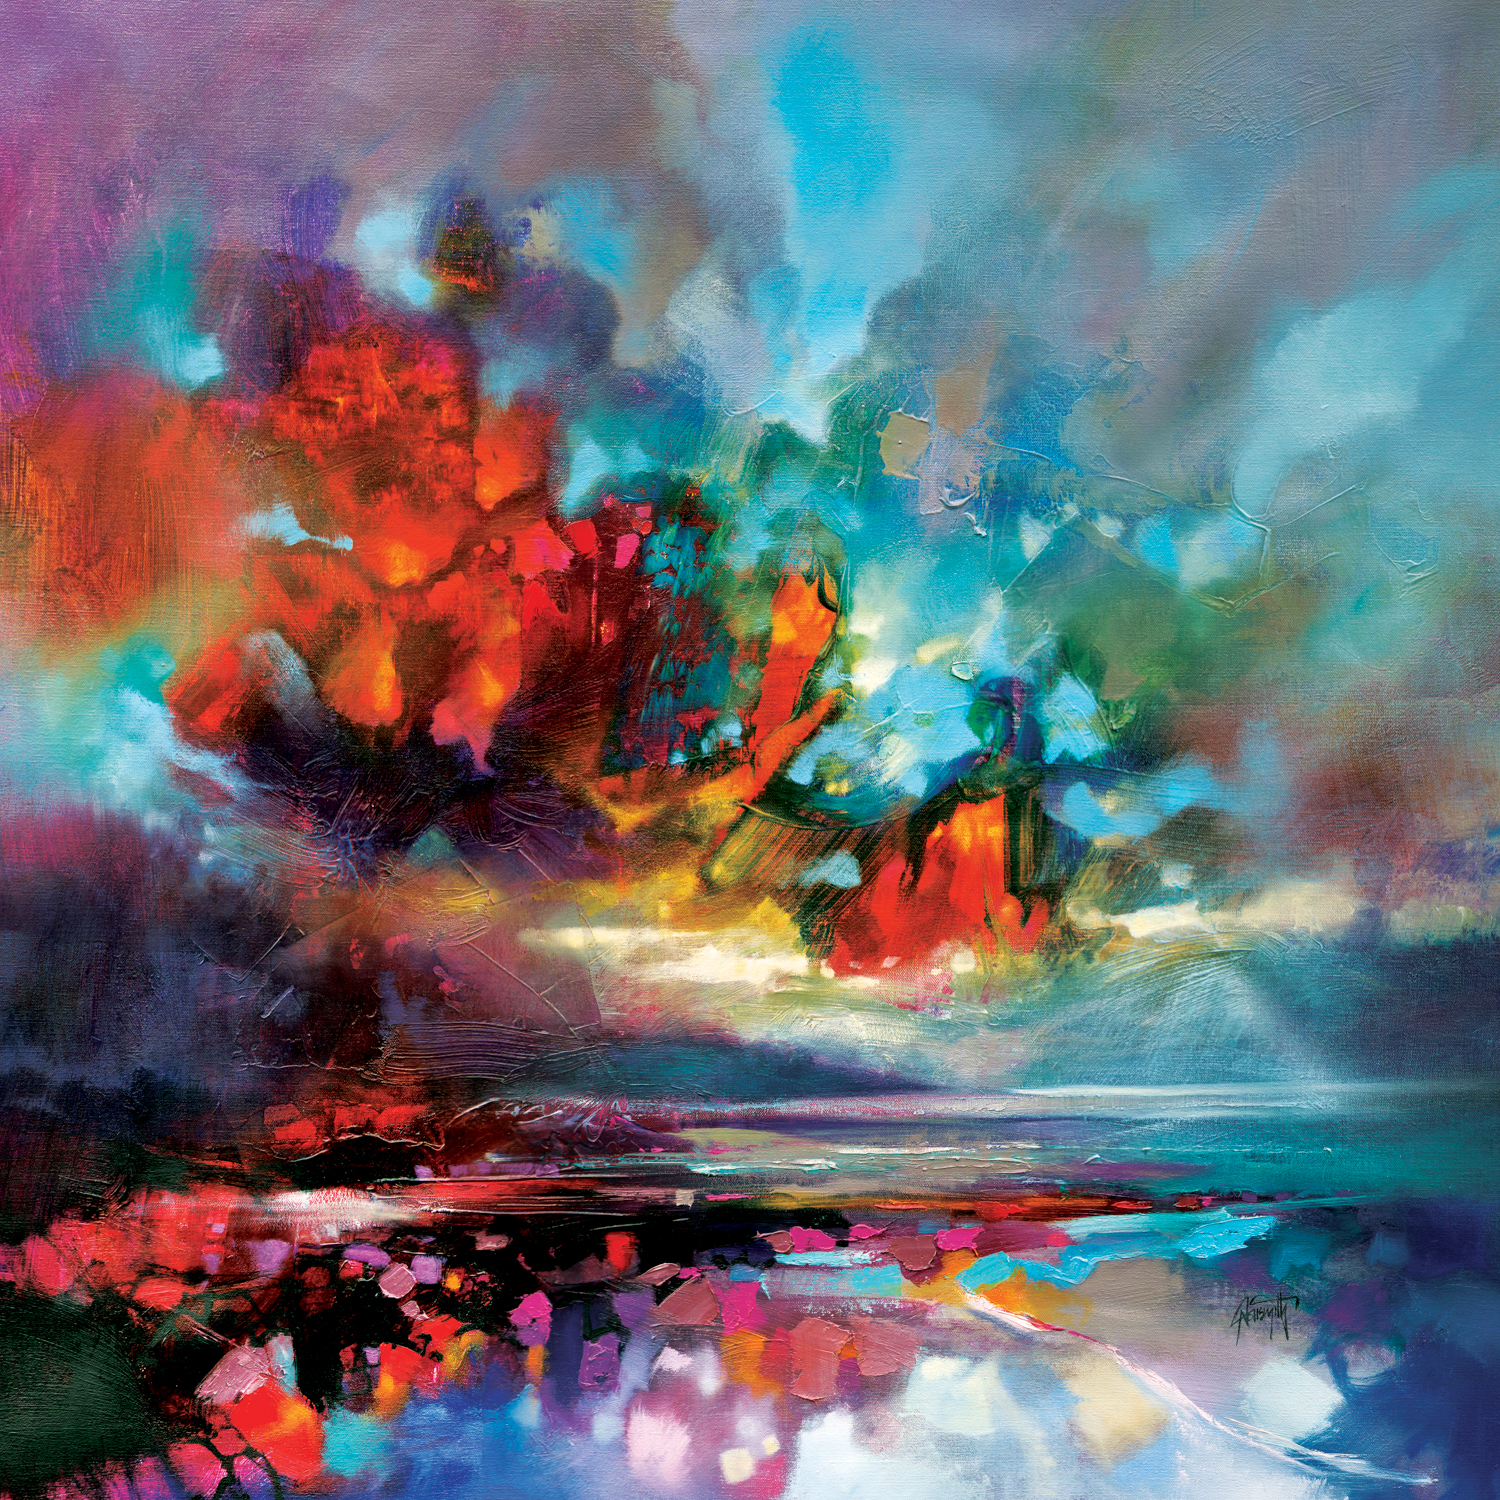 Colorful abstract image resembling a sea horizon and clouds with red, orange, blue, green, purple, white and black